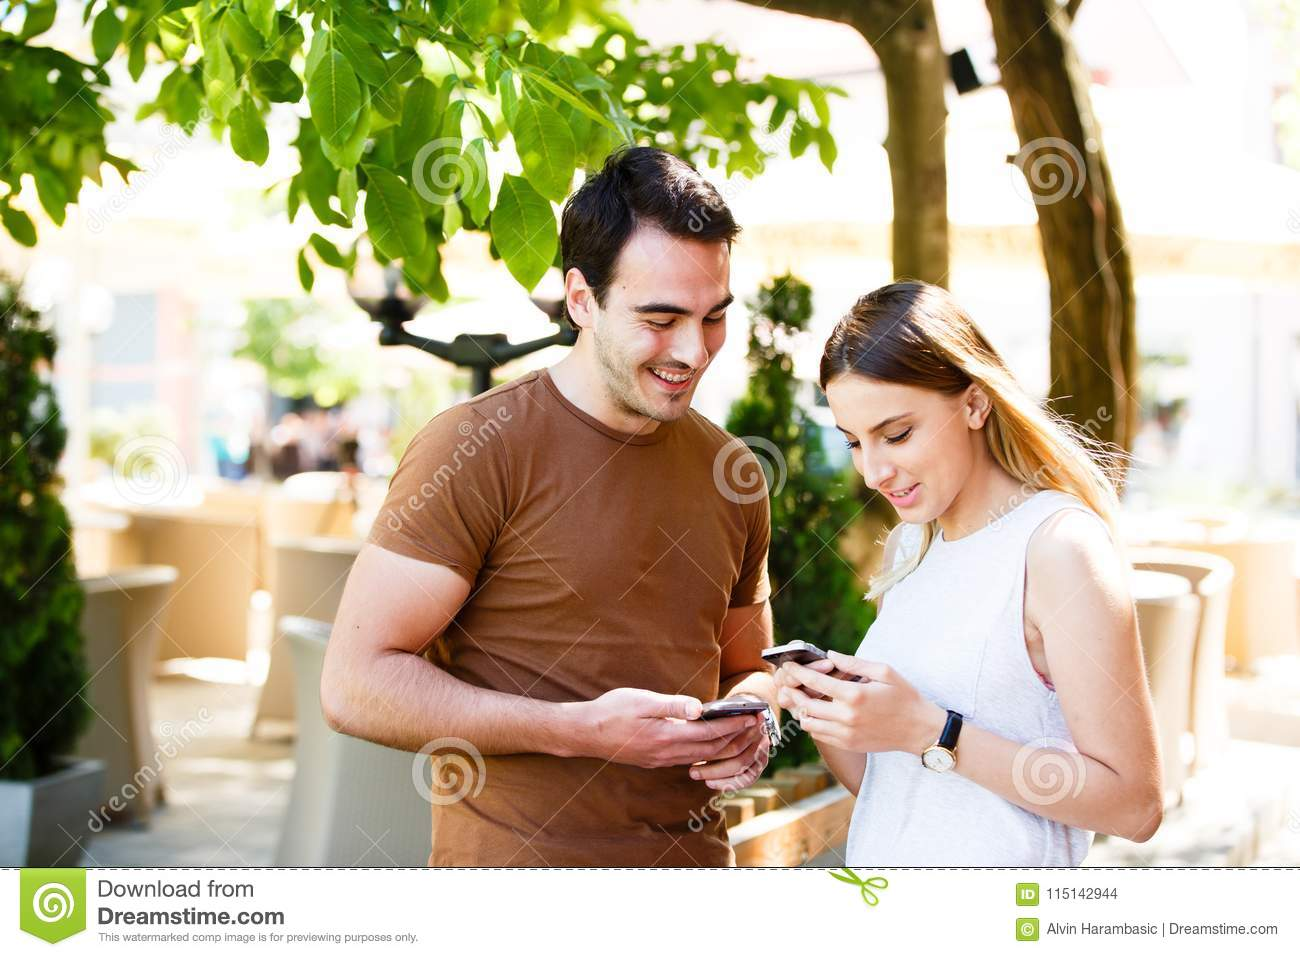 Cute young couple standing and using phone